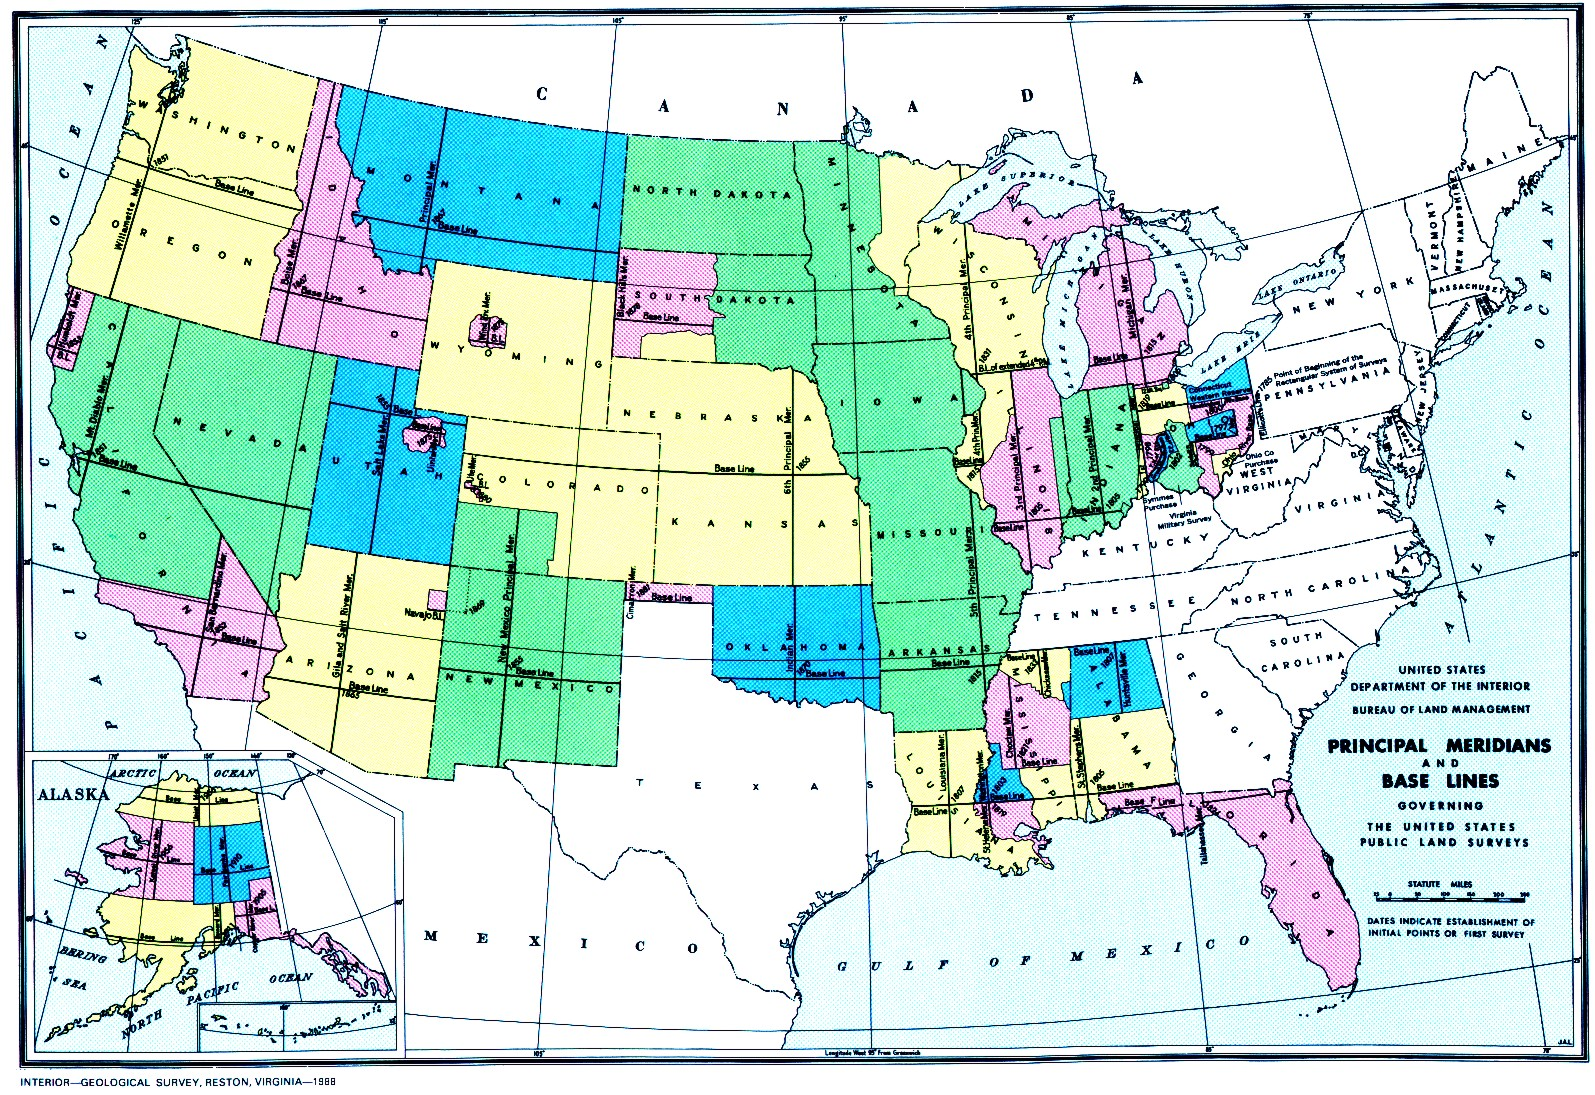 the public land survey system type of map is very important because it legally outlines land parcels this particular map shows the united states and it s